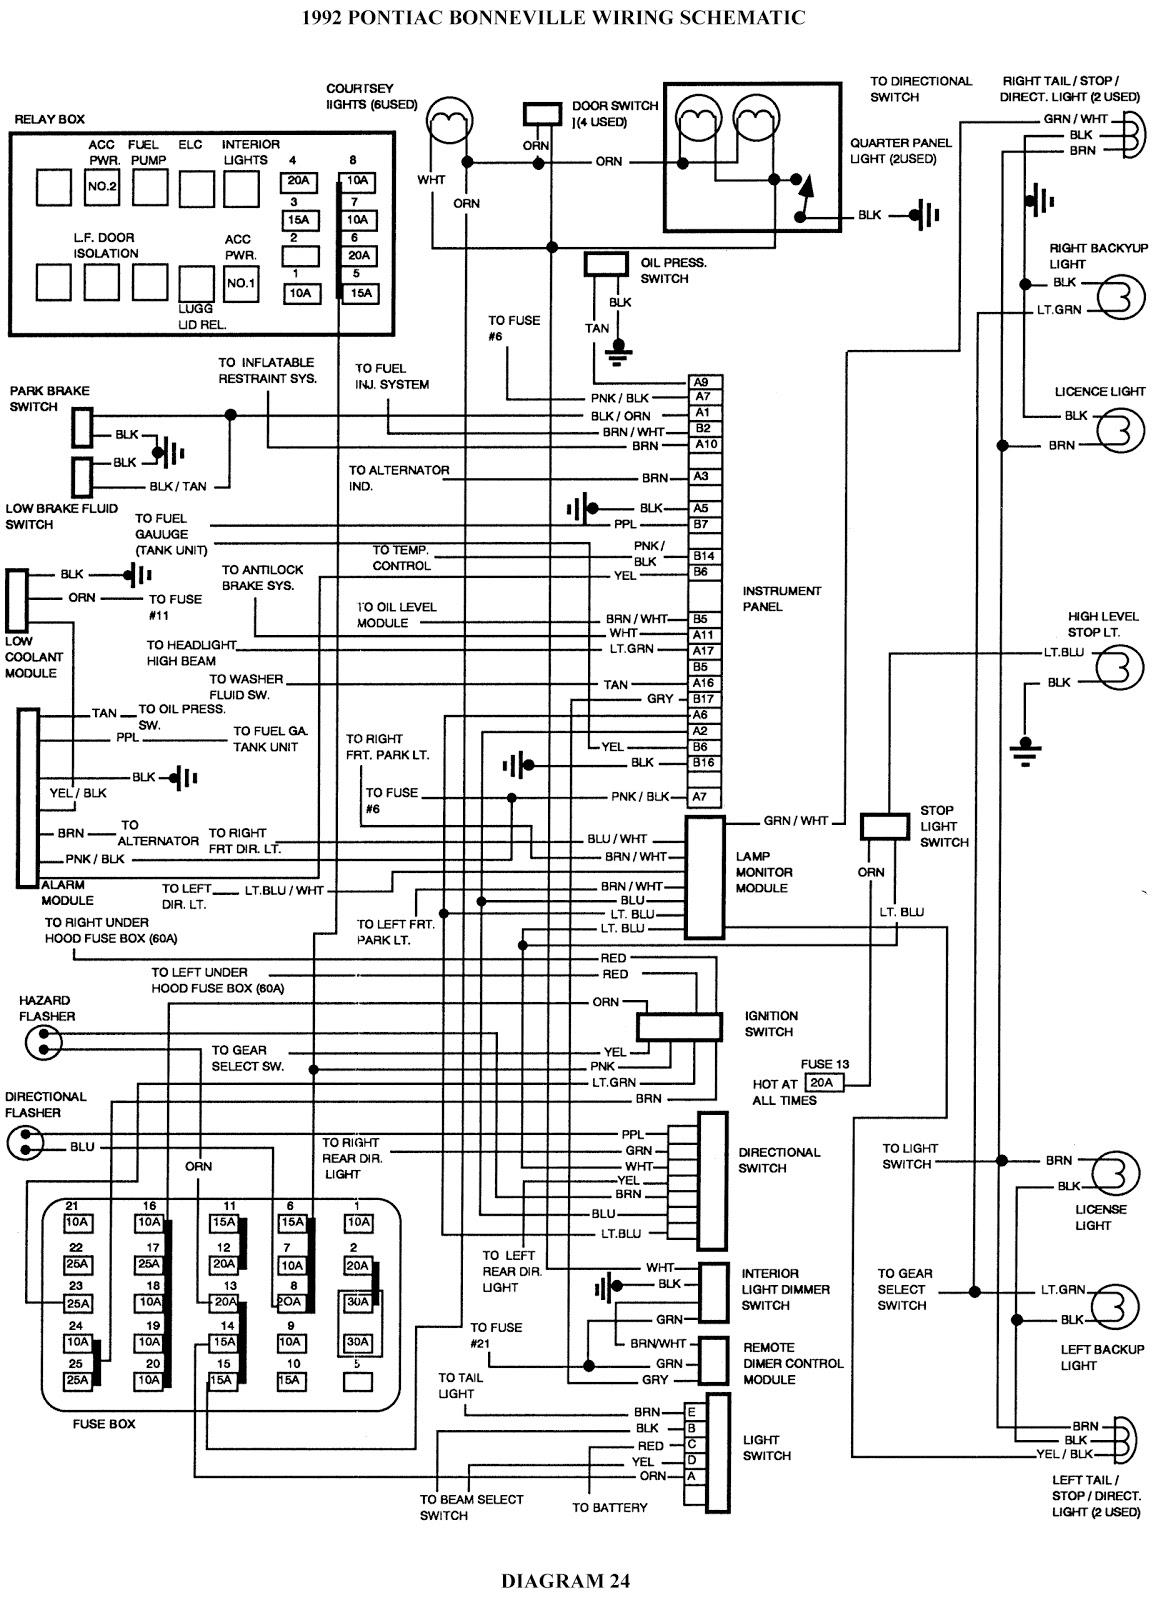 wiring diagram 2003 bonneville interior